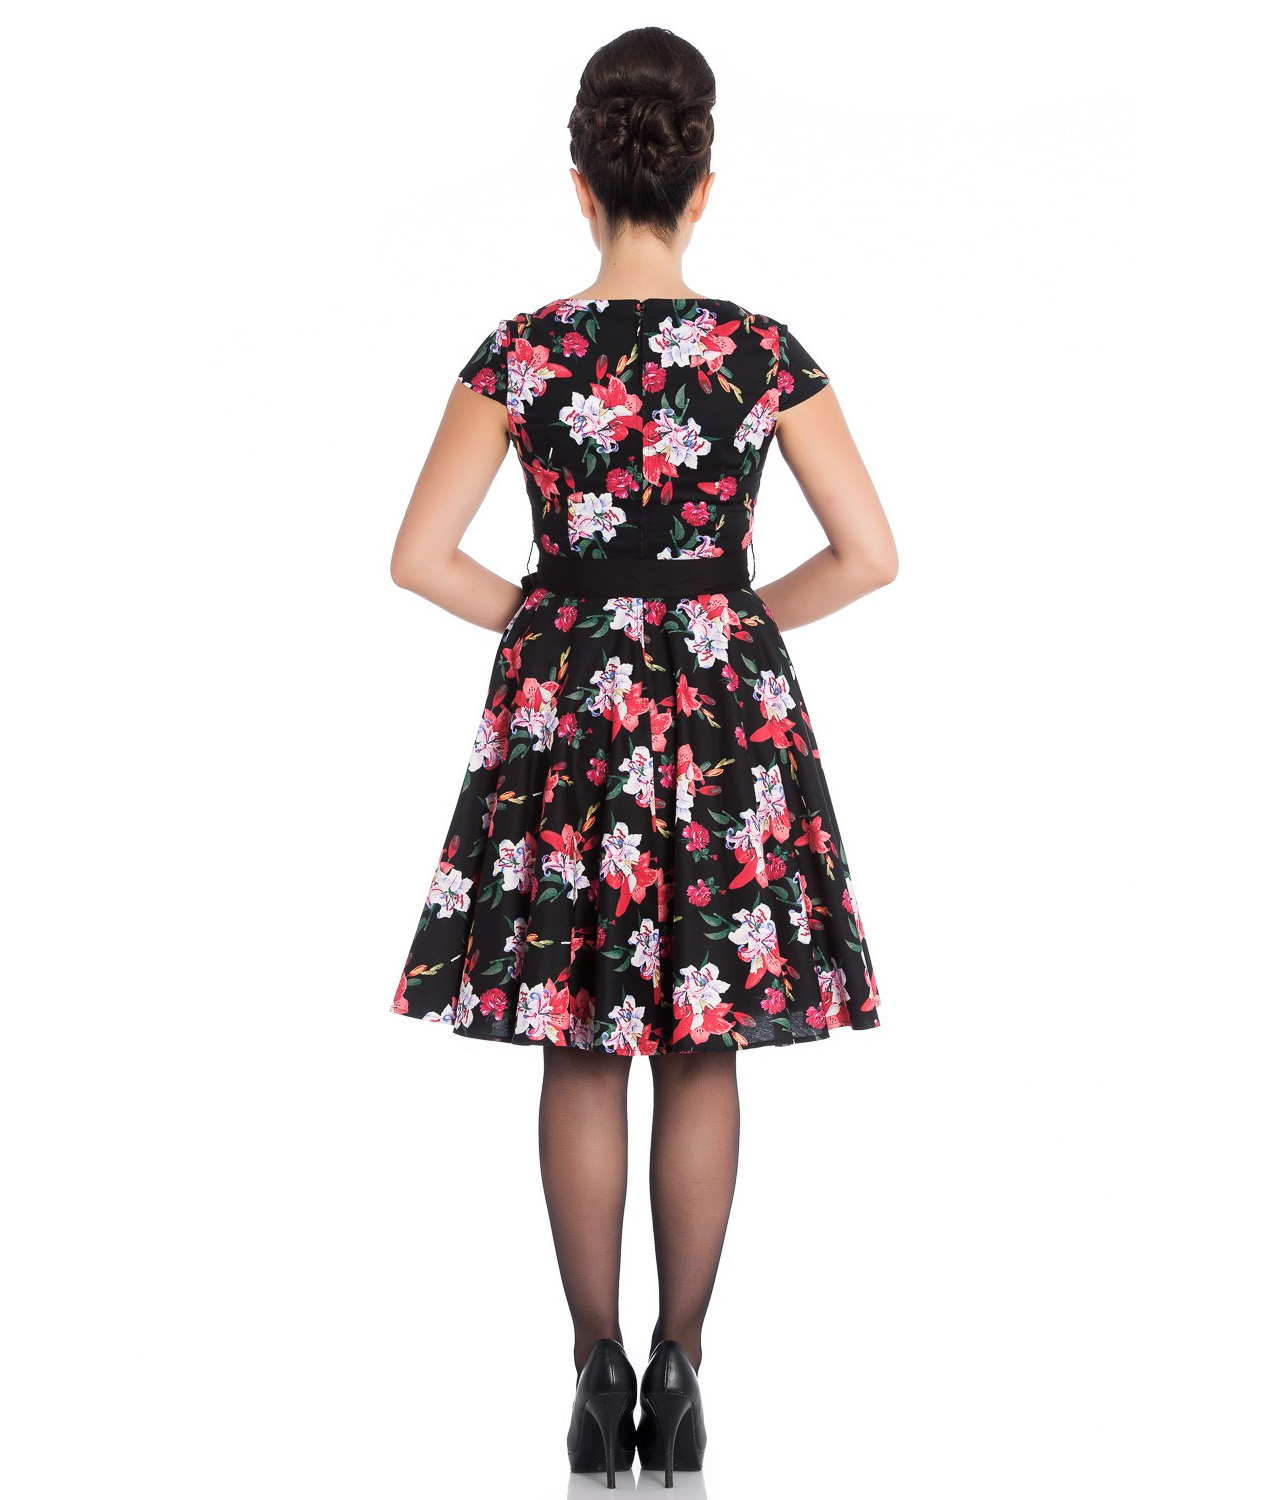 Hell-Bunny-Pin-Up-Mid-Length-50s-Dress-LILIANA-Lilly-Black-Flowers-Bow-All-Sizes thumbnail 13